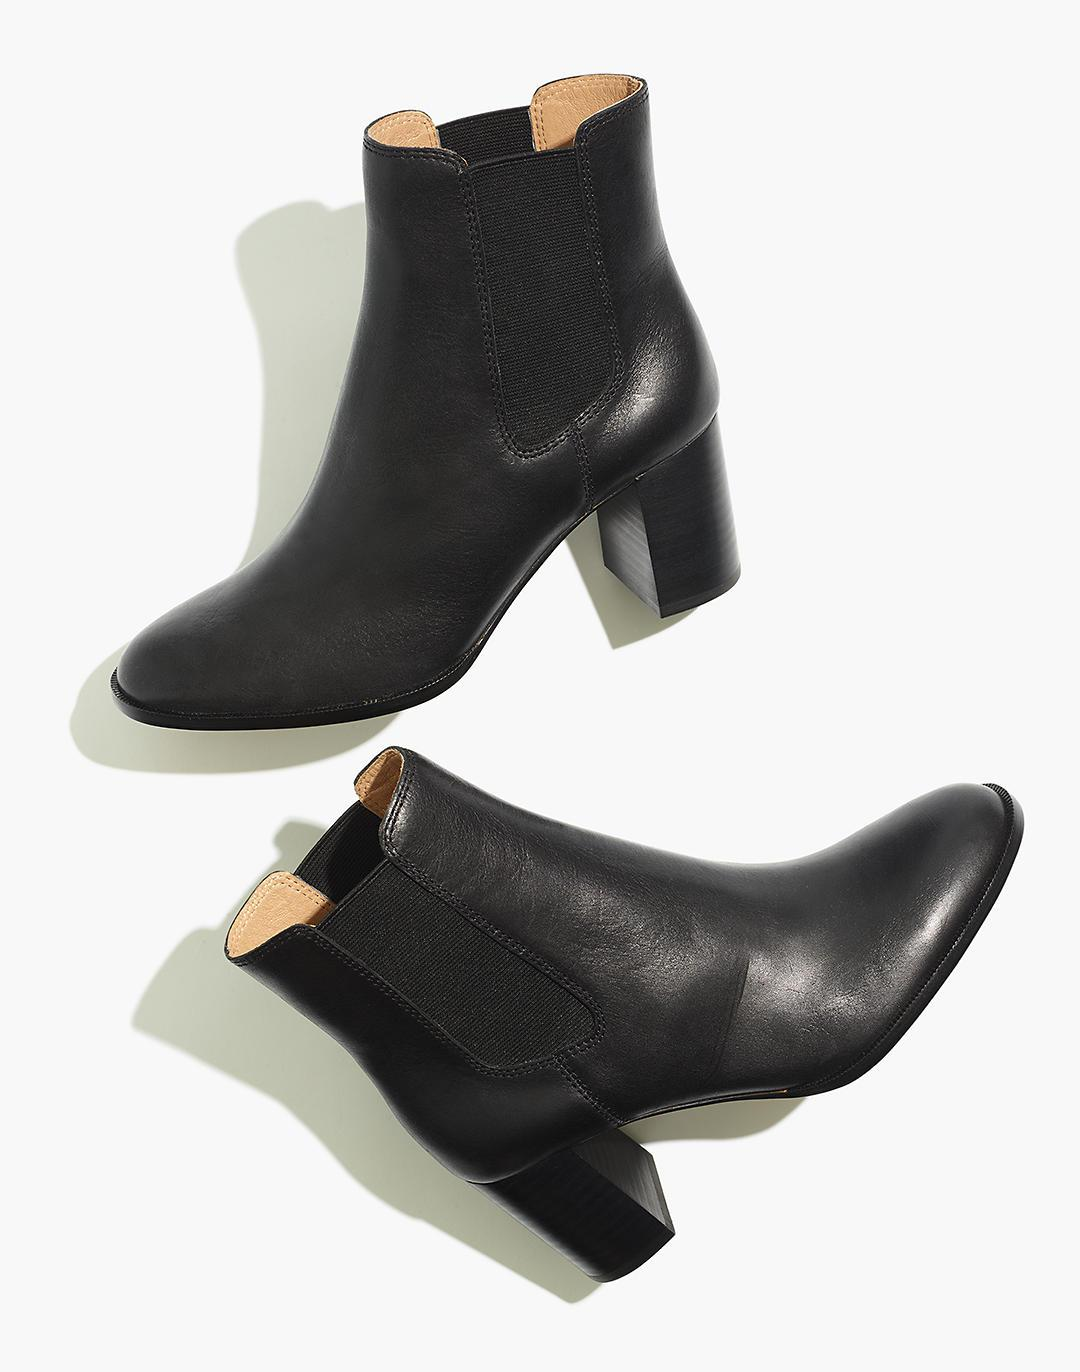 The Laura Chelsea Boot in Leather